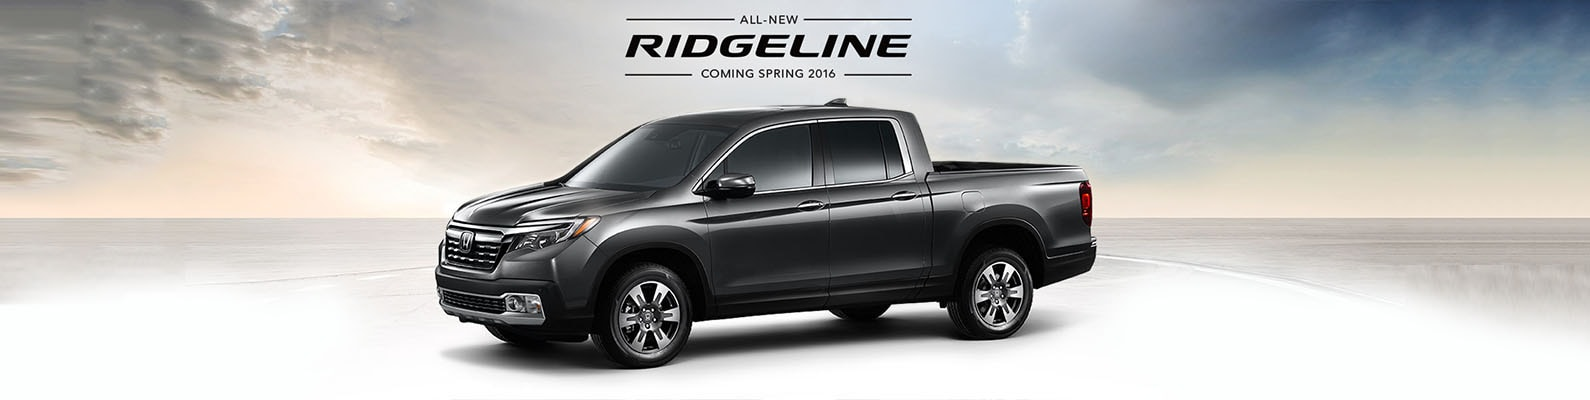 2017 Honda Ridgeline  Super Bowl Commercial